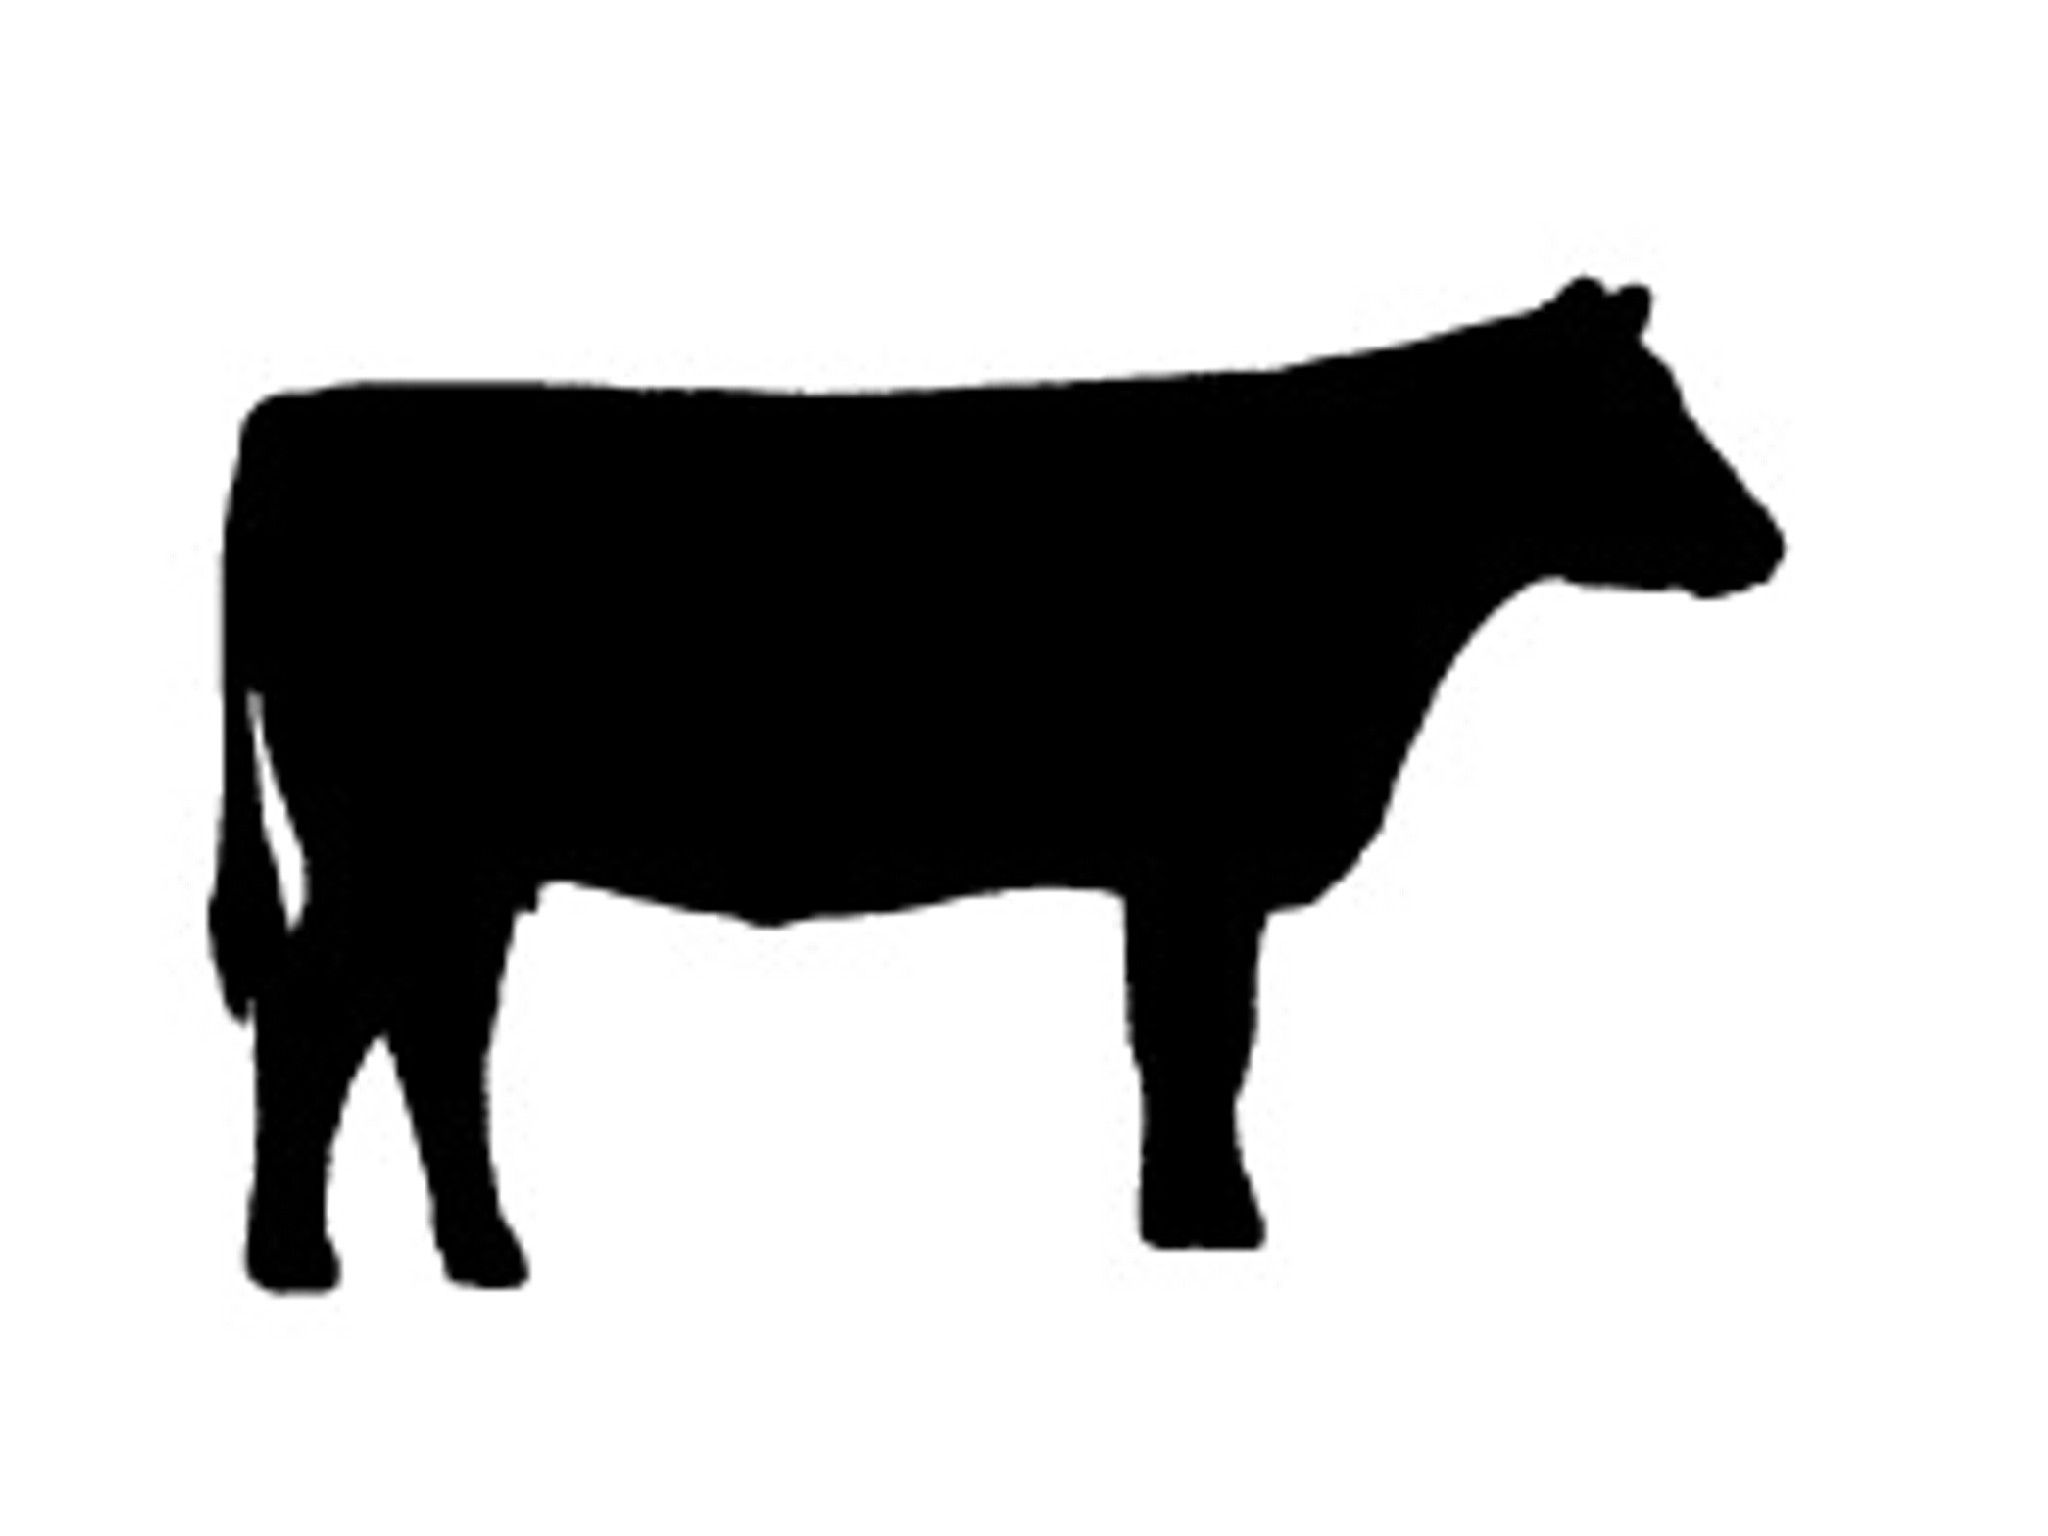 Steering clipart silhouette. Beef cow at getdrawings png download